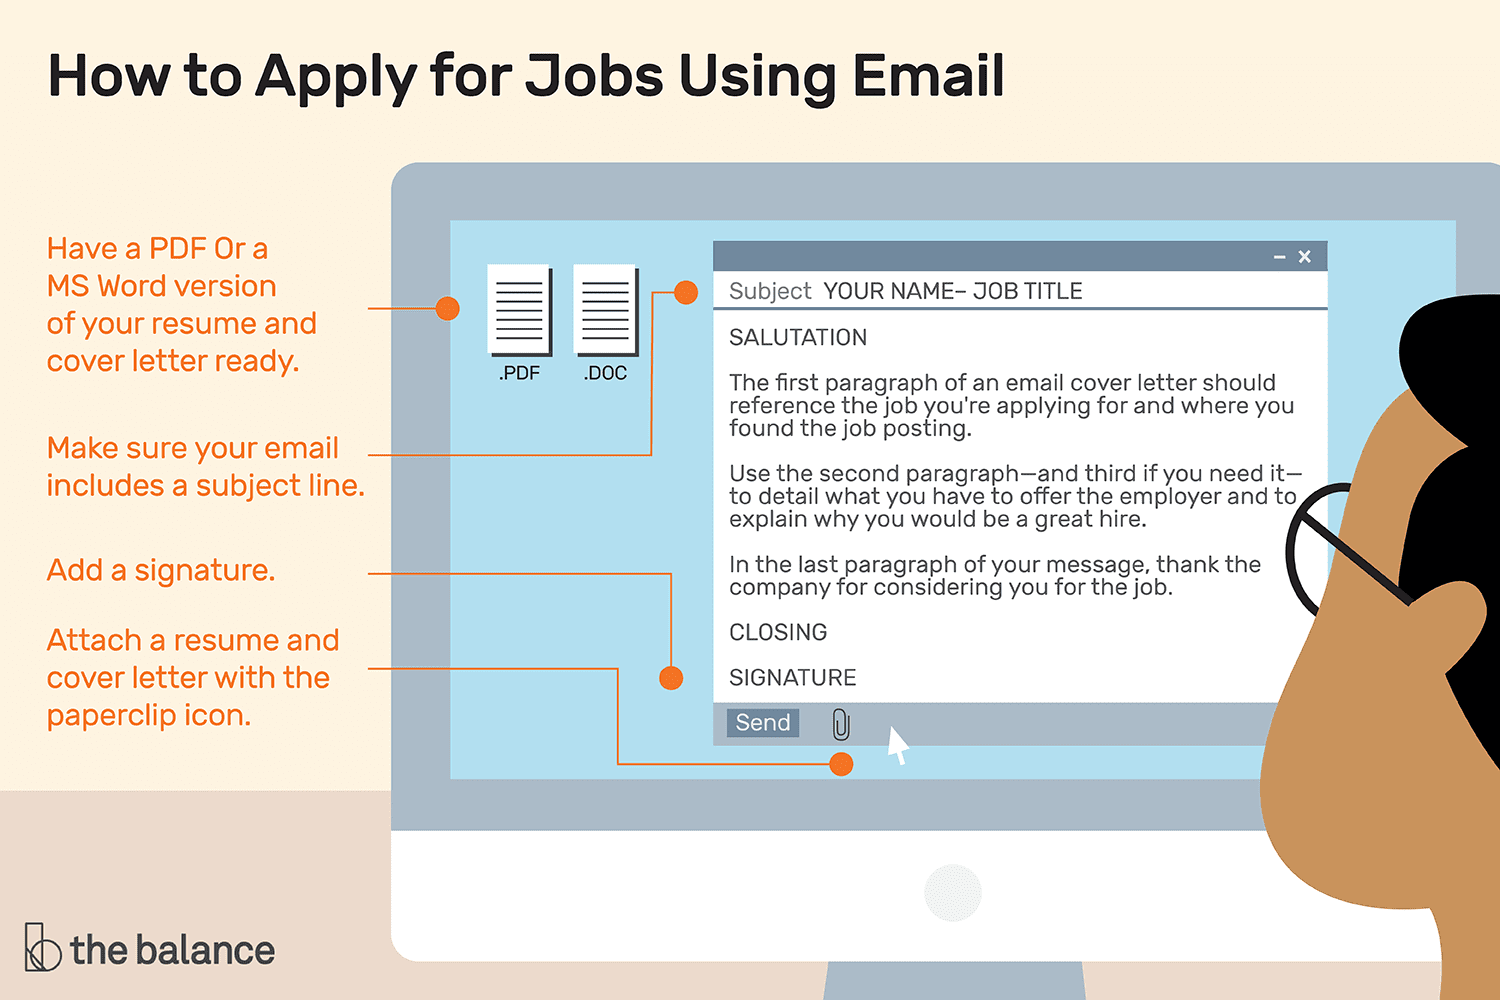 hight resolution of how to apply for jobs via email 2061595 final 5b87ff5646e0fb0050102a12 png